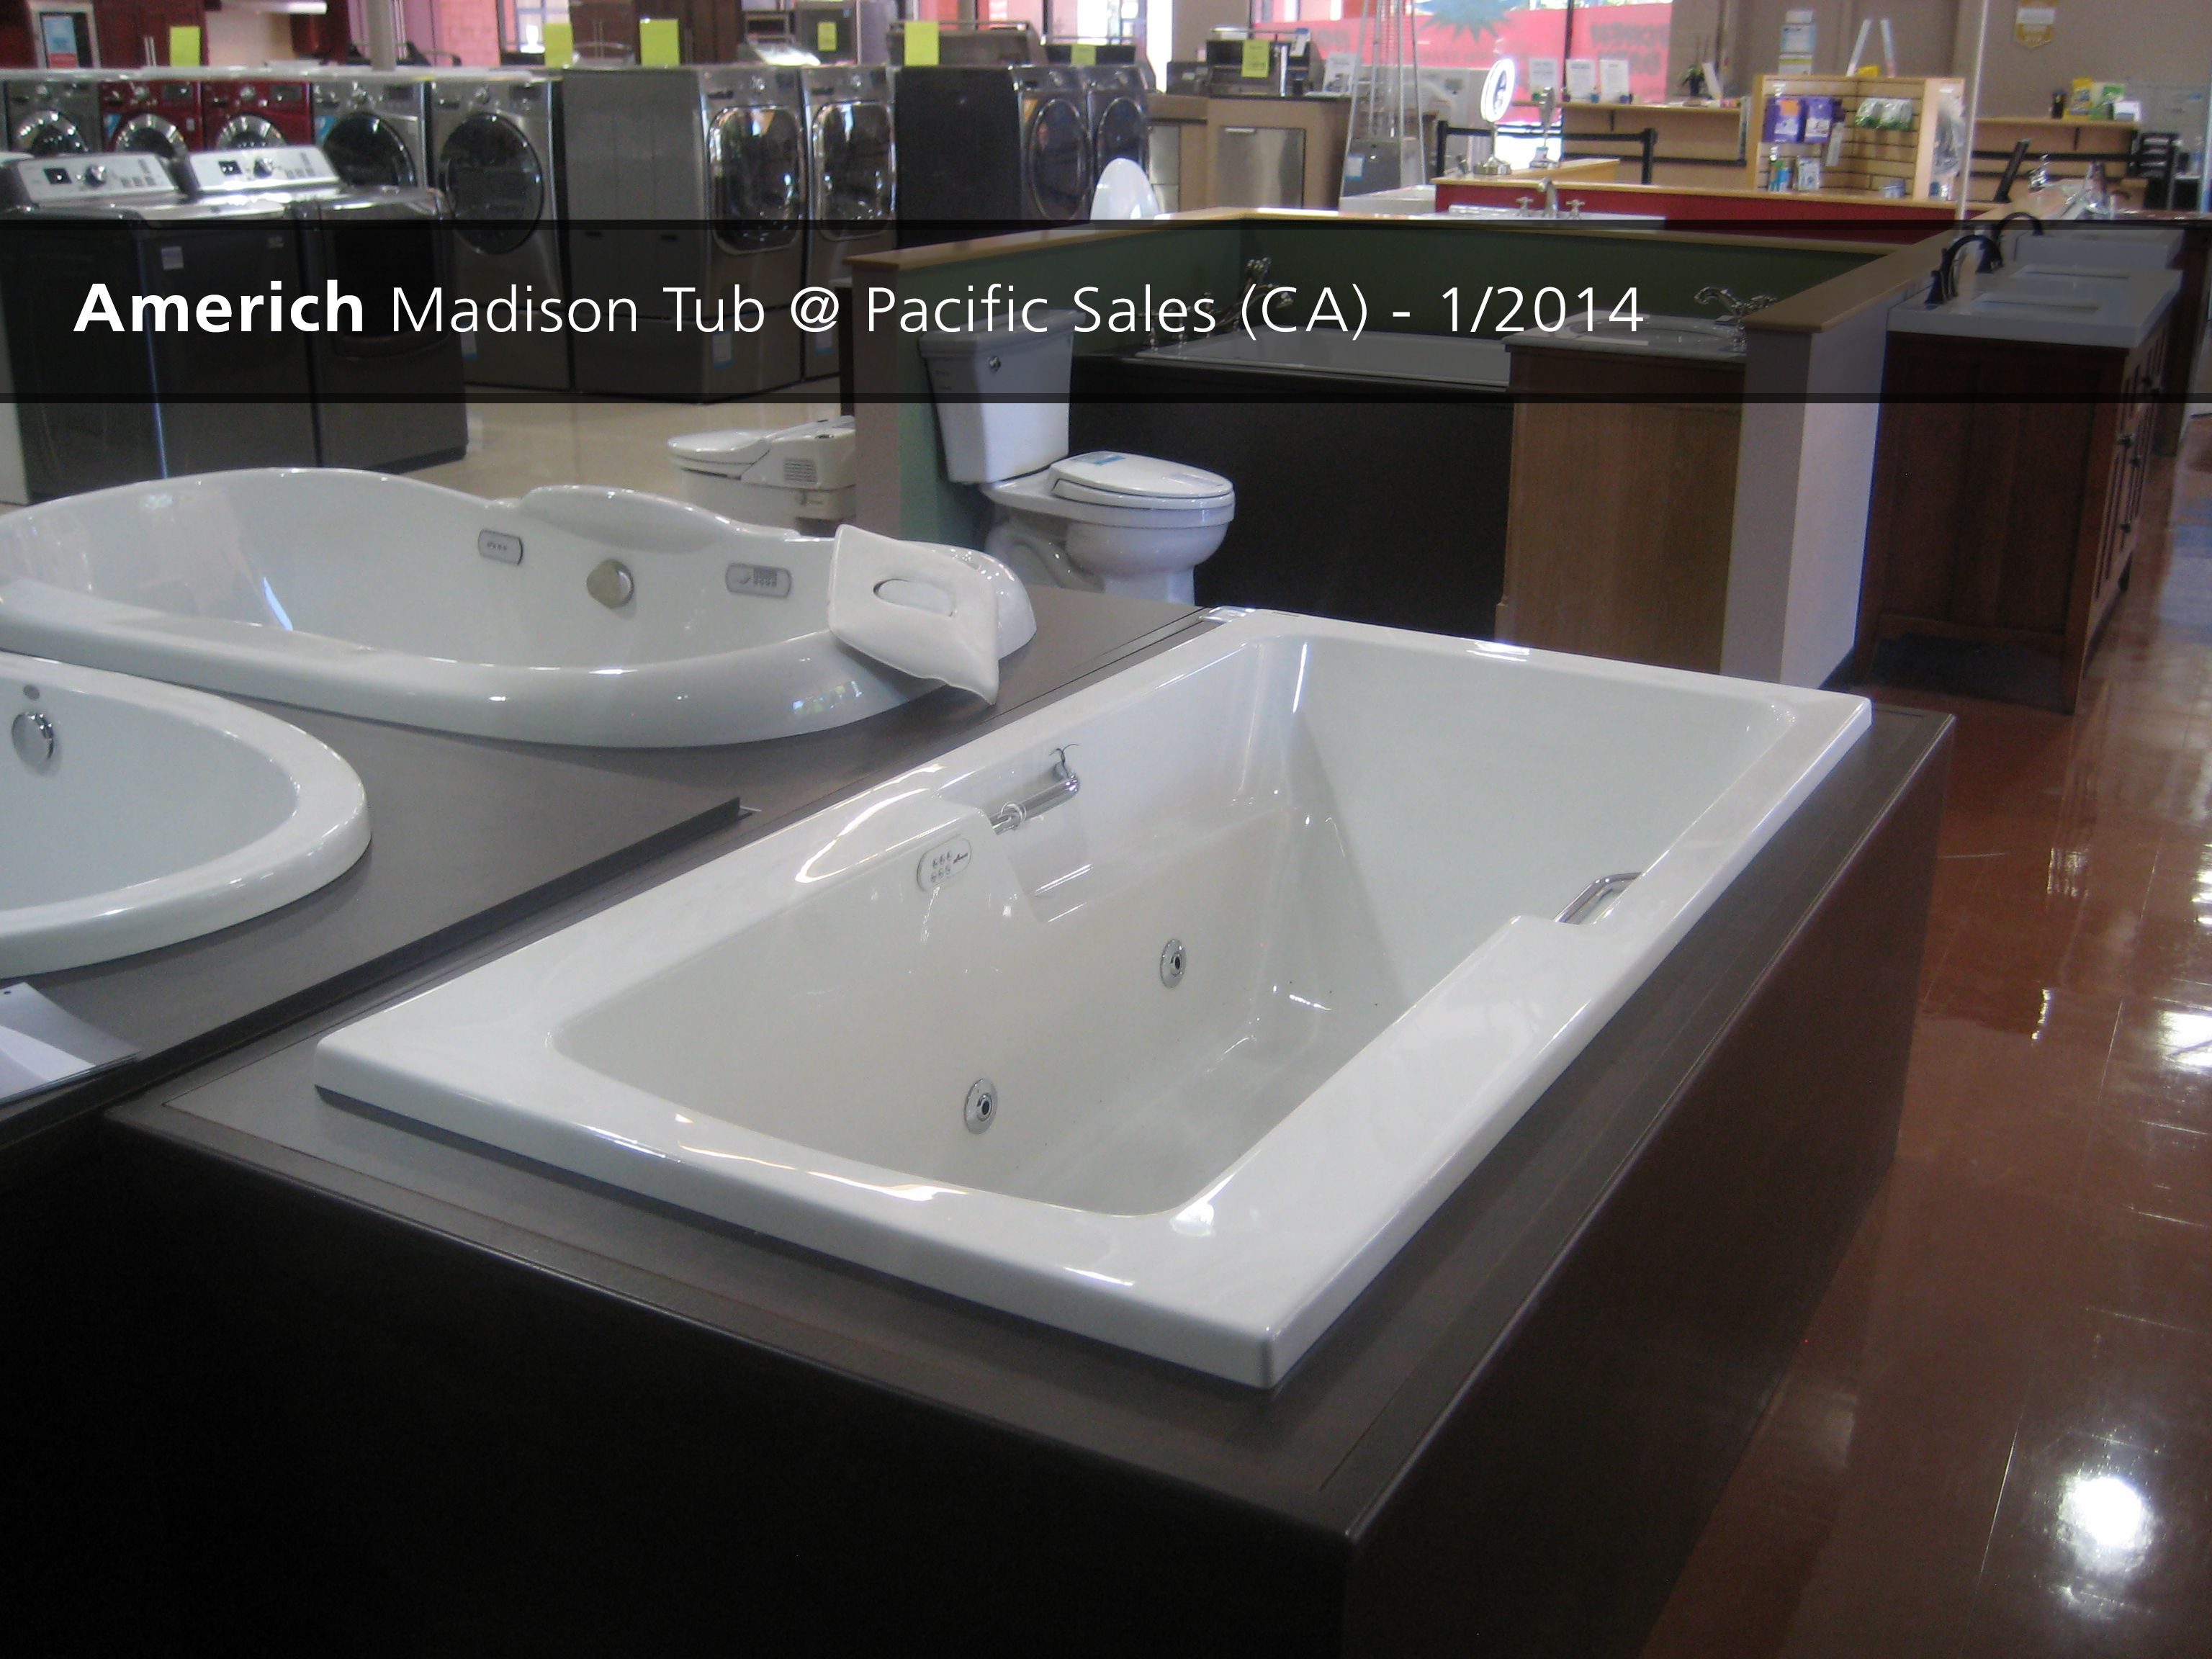 Bathroom Showrooms Torrance Ca americh madison tub @ pacific sales (ca) - 2014 | showroom